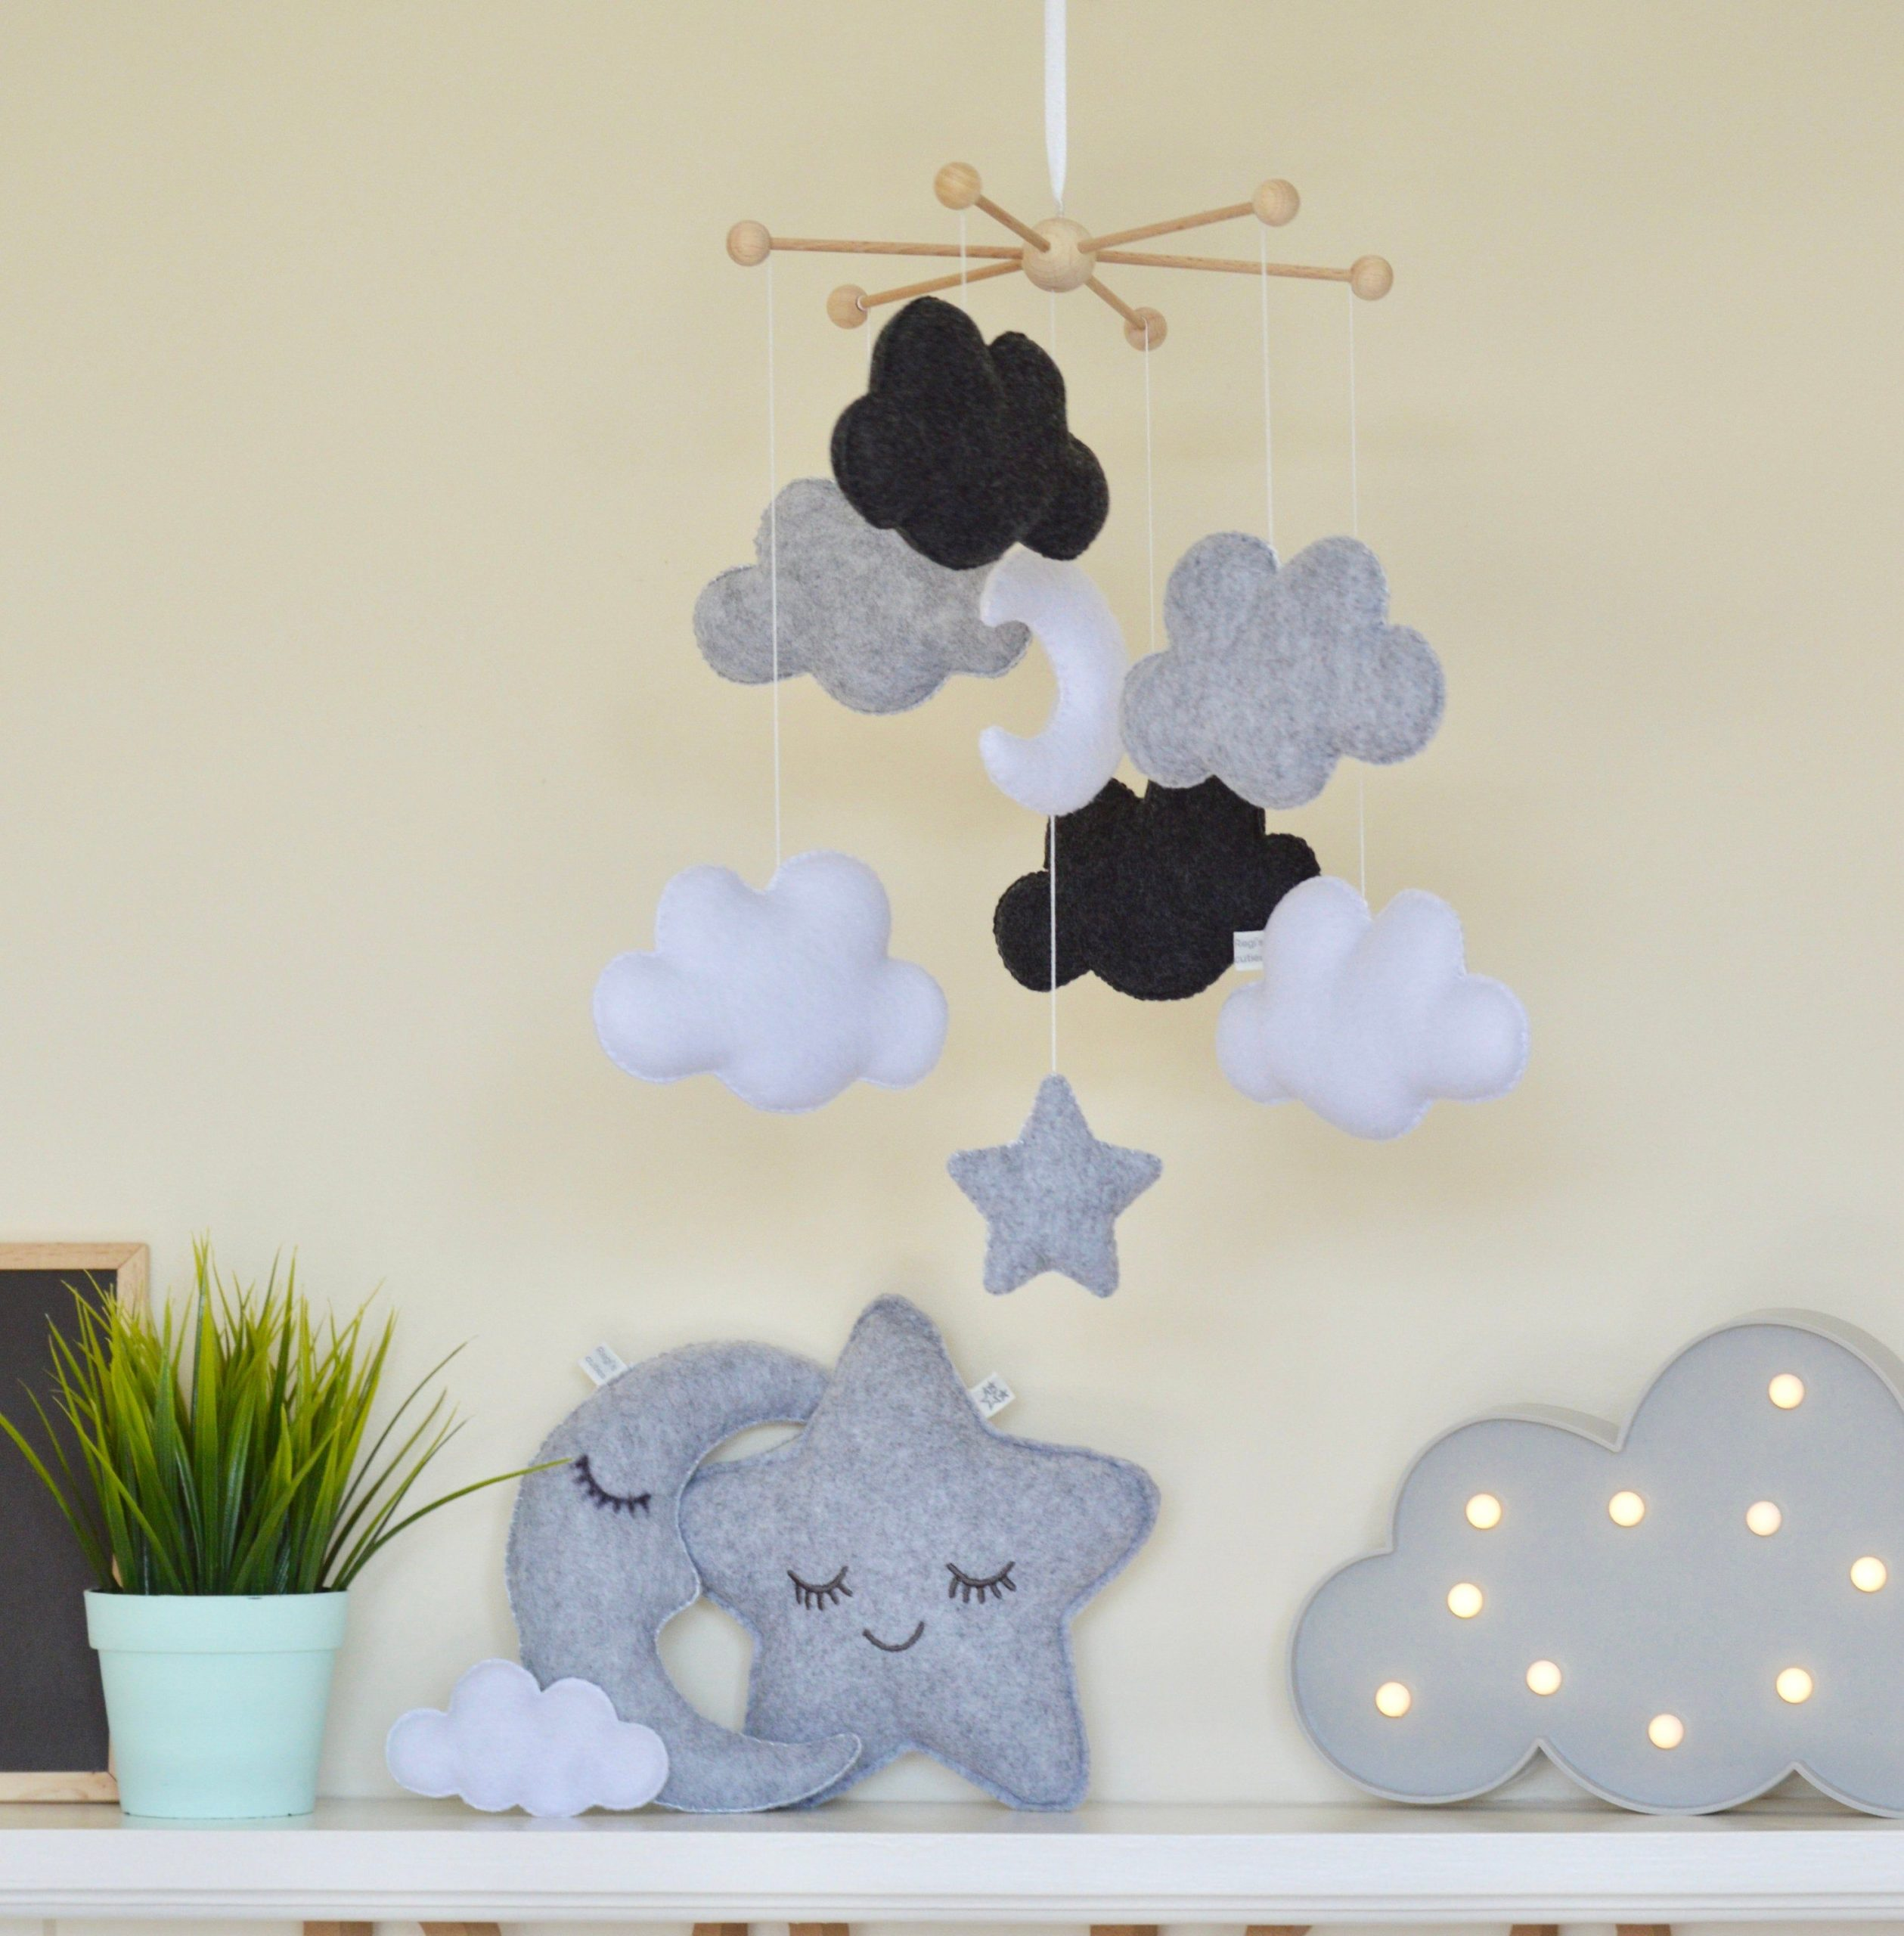 Monochrome mobile, cloud moon mobile, black and white mobile, cloud cot mobile, baby shower decor, moon mobile, cloud mobile, nursery mobile